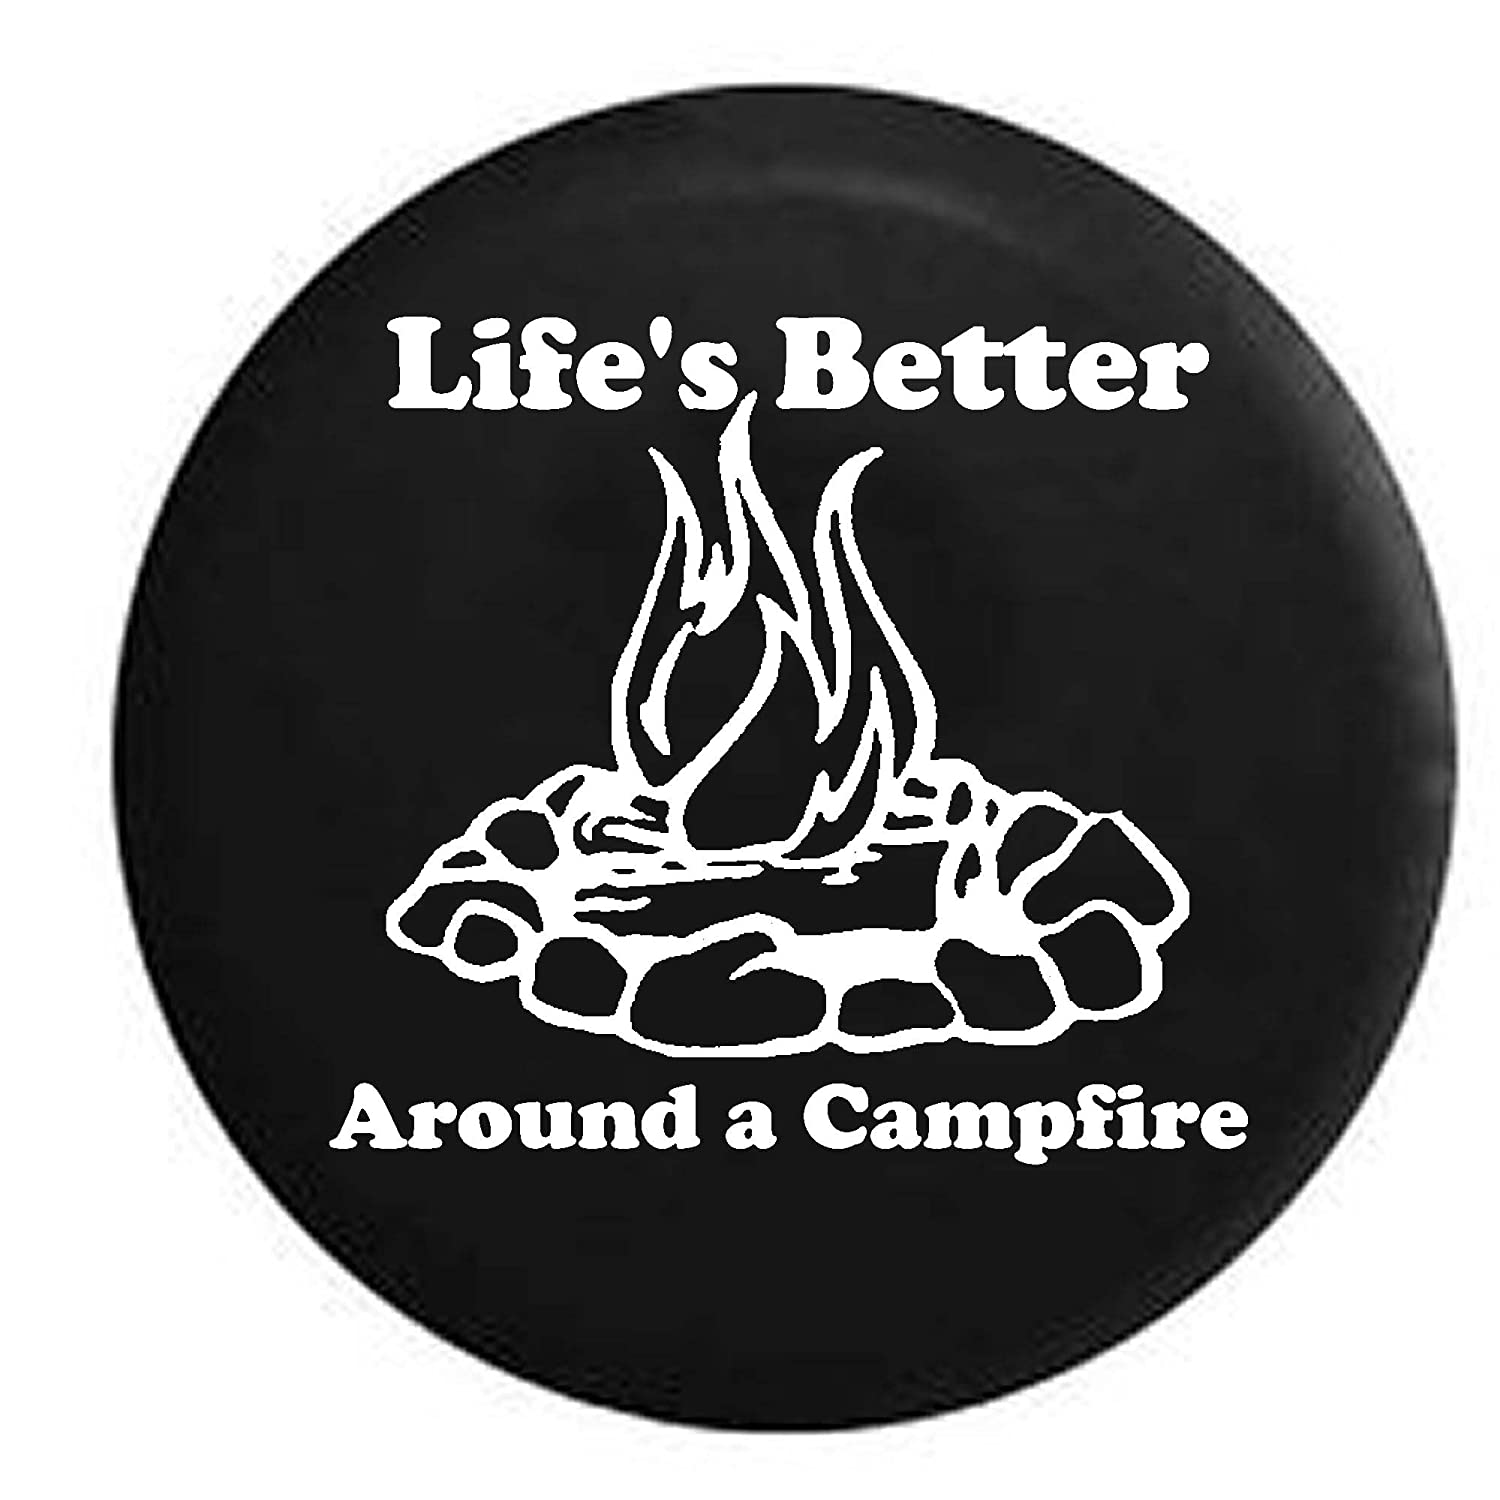 Pike Stealth Lifes Better Around a Campfire Camping Trailer RV Spare Tire Cover OEM Vinyl Black 30 in